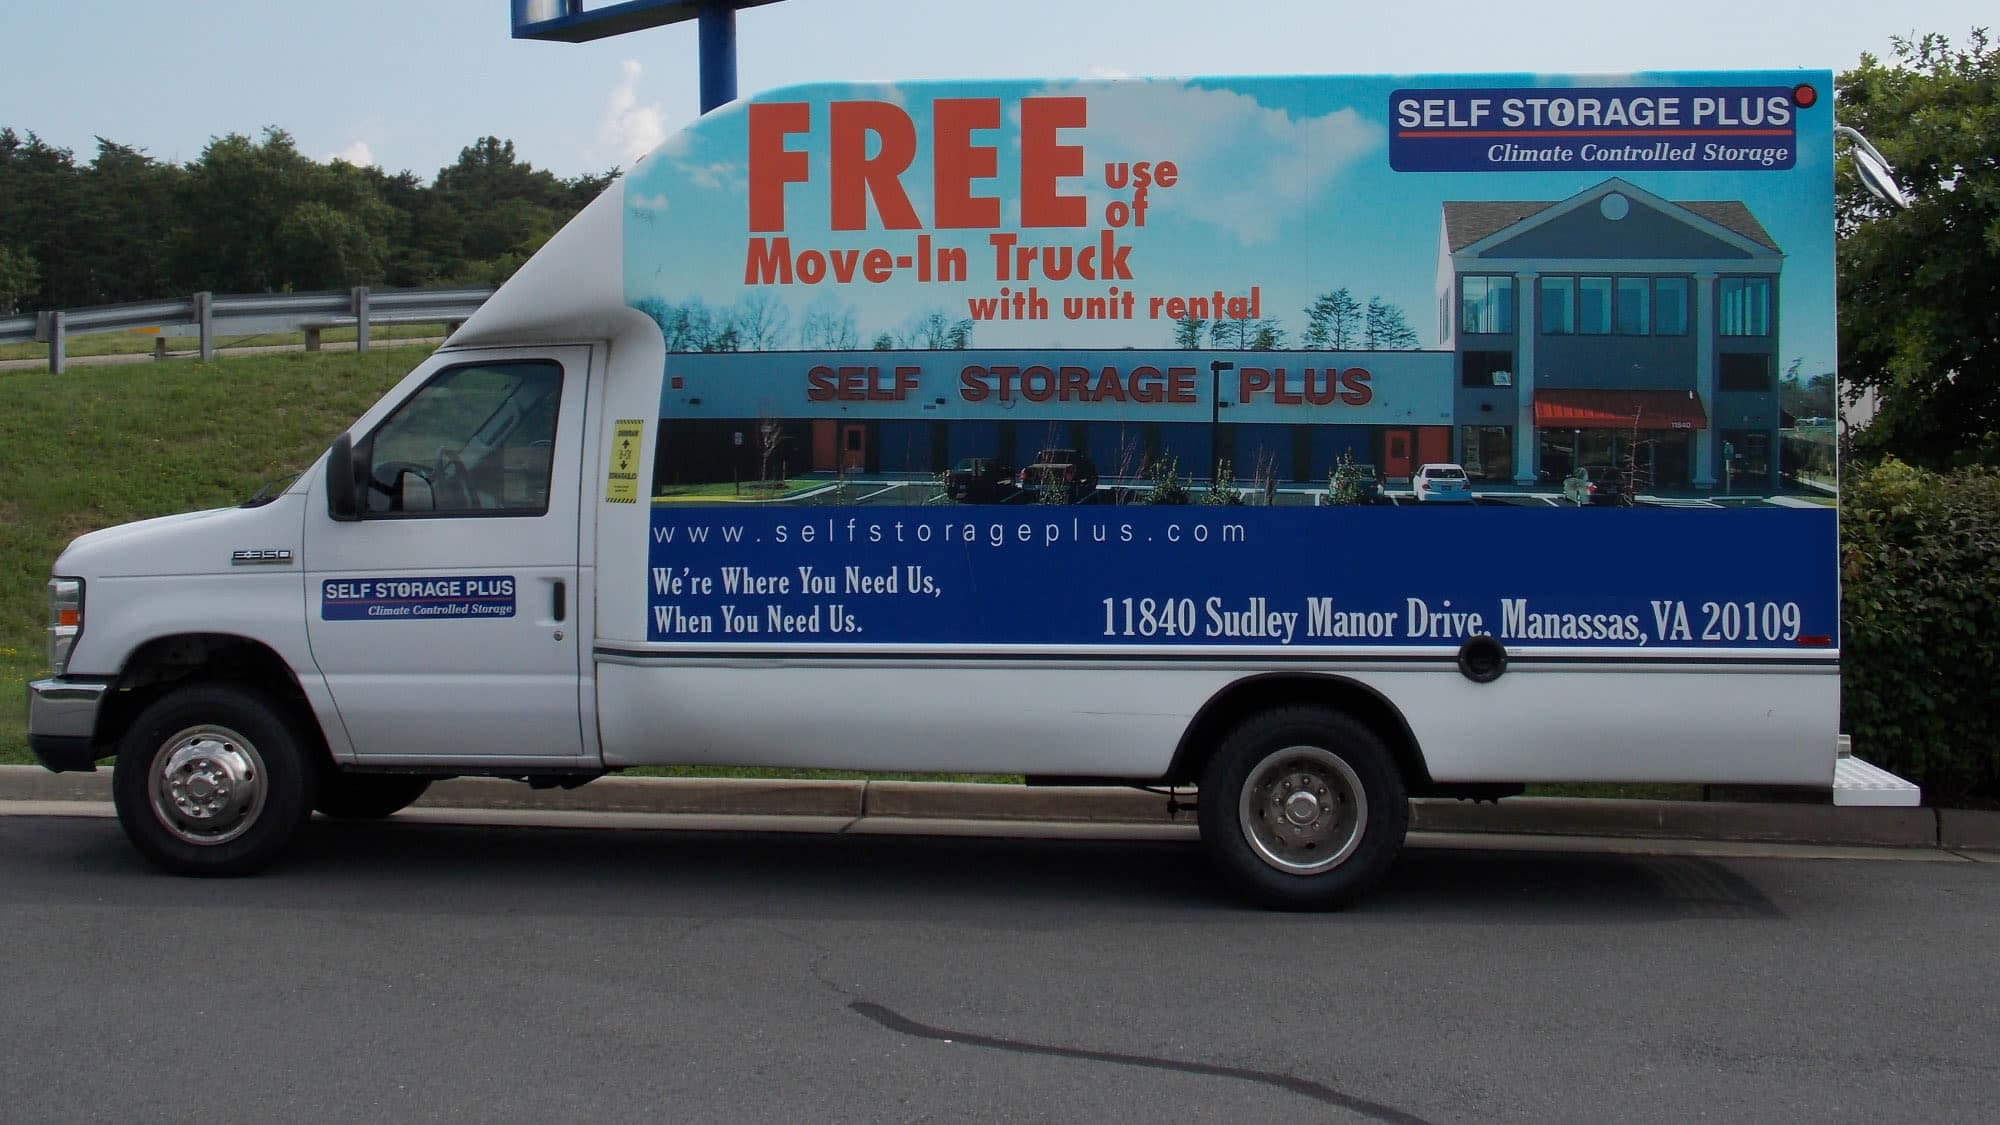 Moving truck at Self Storage Plus in Manassas, VA